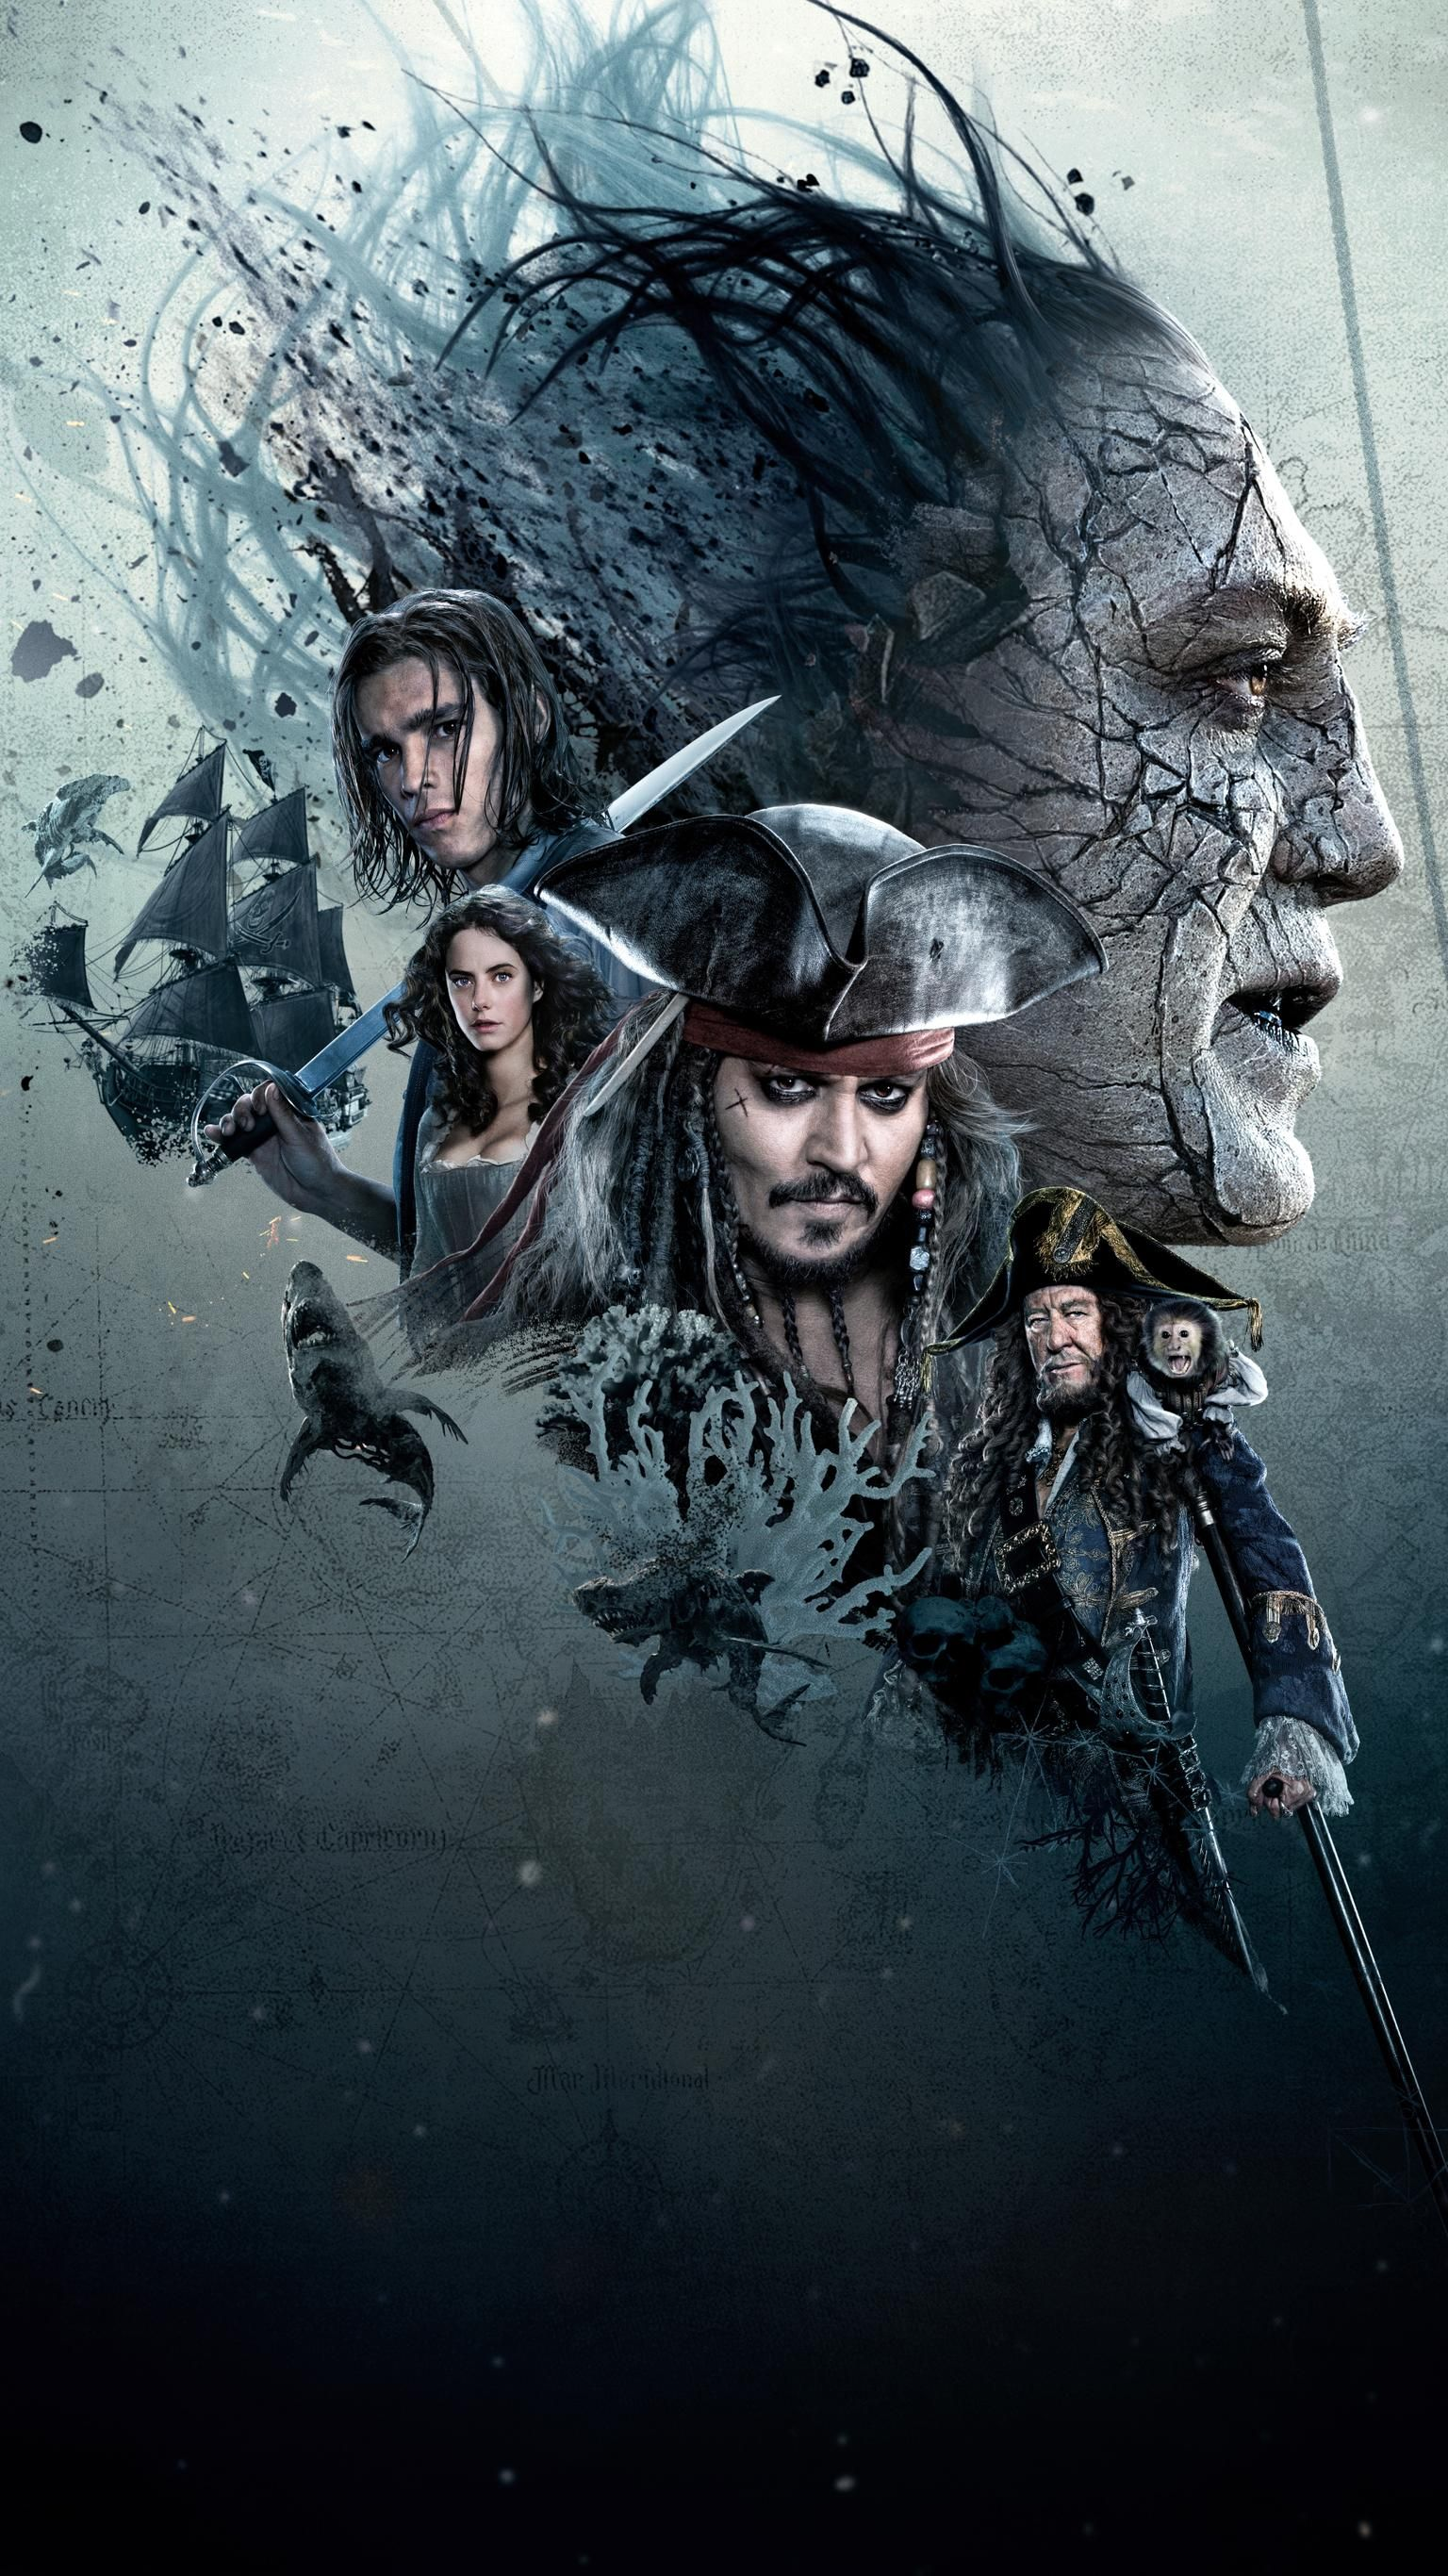 Pirates Of The Caribbean Dead Men Tell No Tales 2017 Phone Wallpaper Moviemania Pirates Of The Caribbean Jack Sparrow Wallpaper Pirates